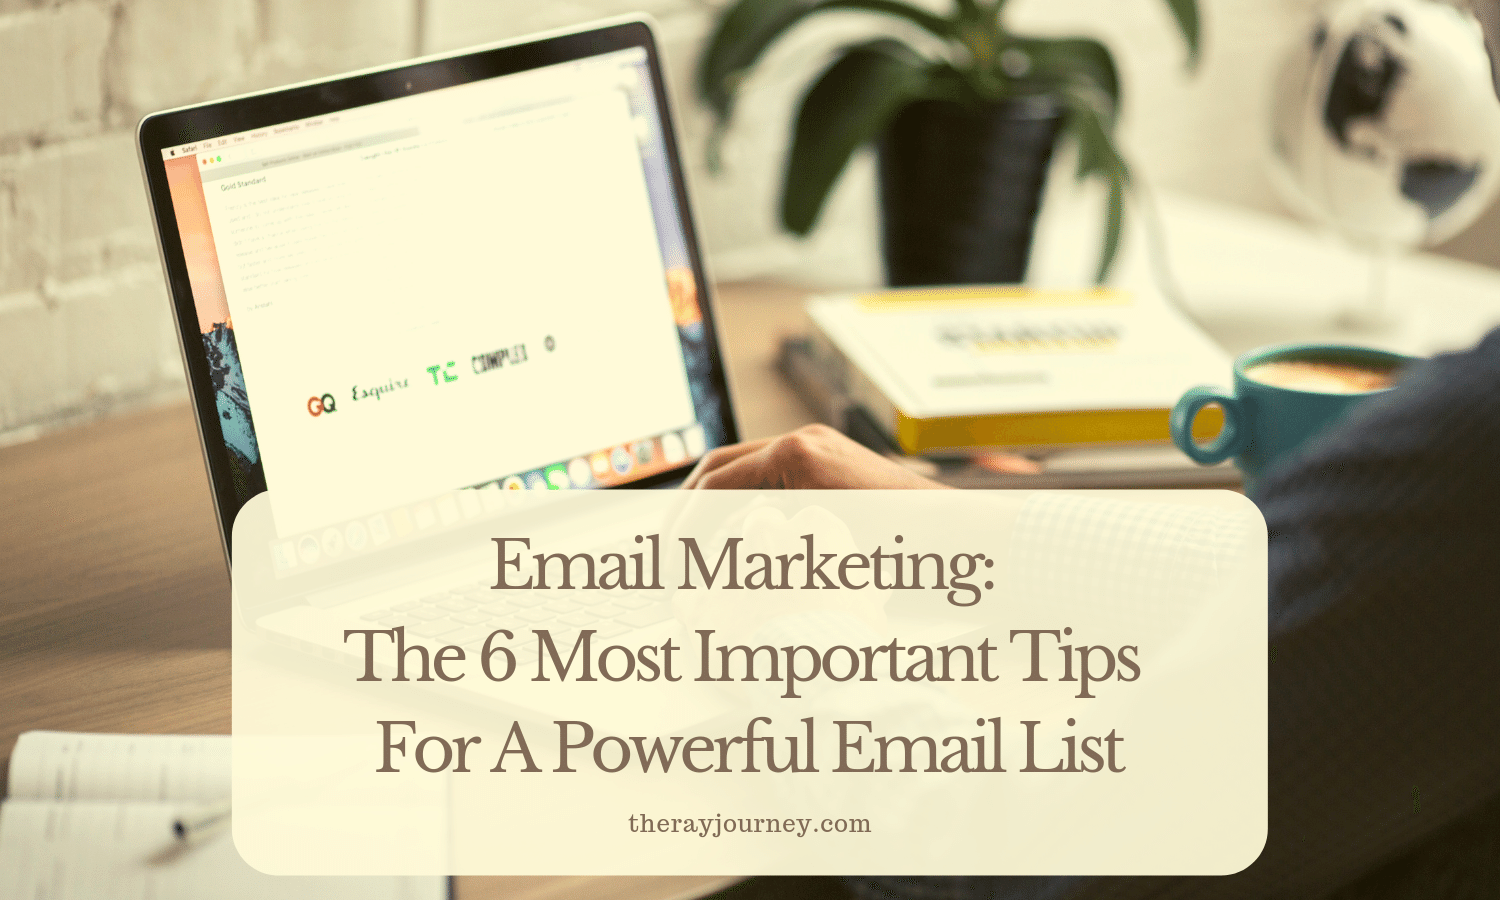 email marketing: the 6 most important tips for a powerful email list